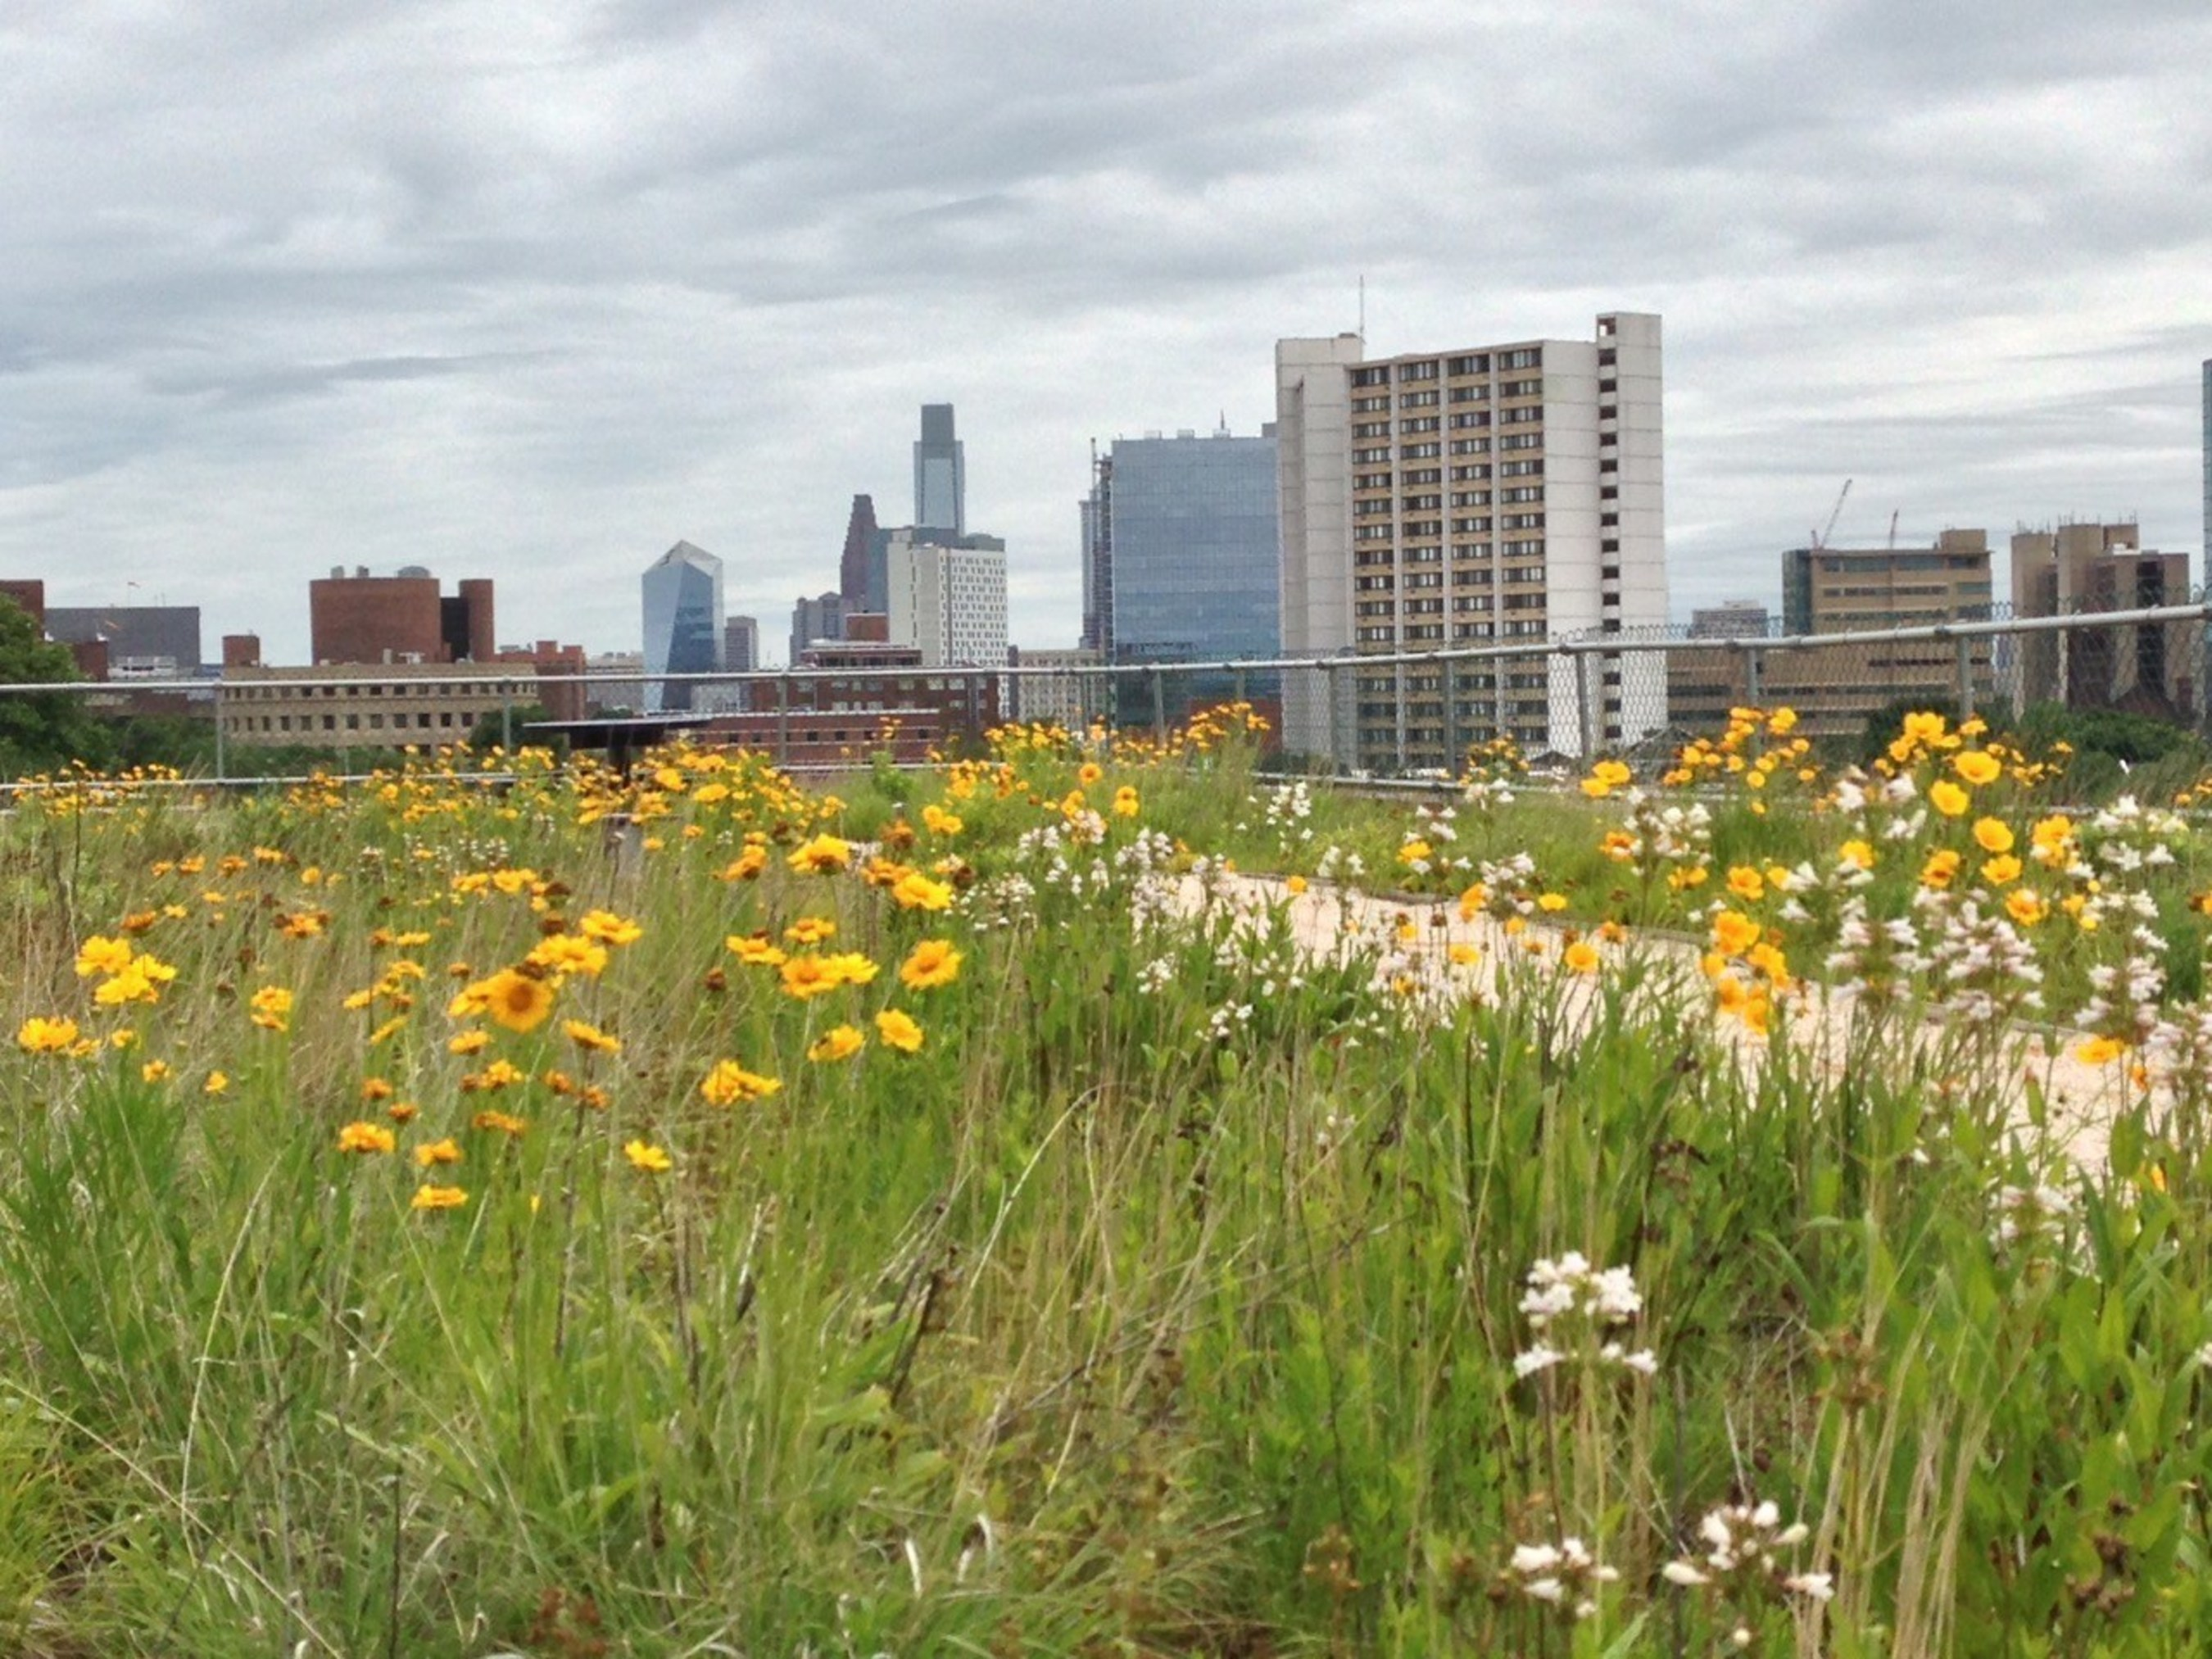 2.0 University Place was built with the highest standards for environmental sustainability, providing a cleaner, healthier work environment and lower operating and maintenance costs.  The rooftop garden, which overlooks the Philadelphia skyline, improves air quality, conserves energy and reduces storm water runoff.